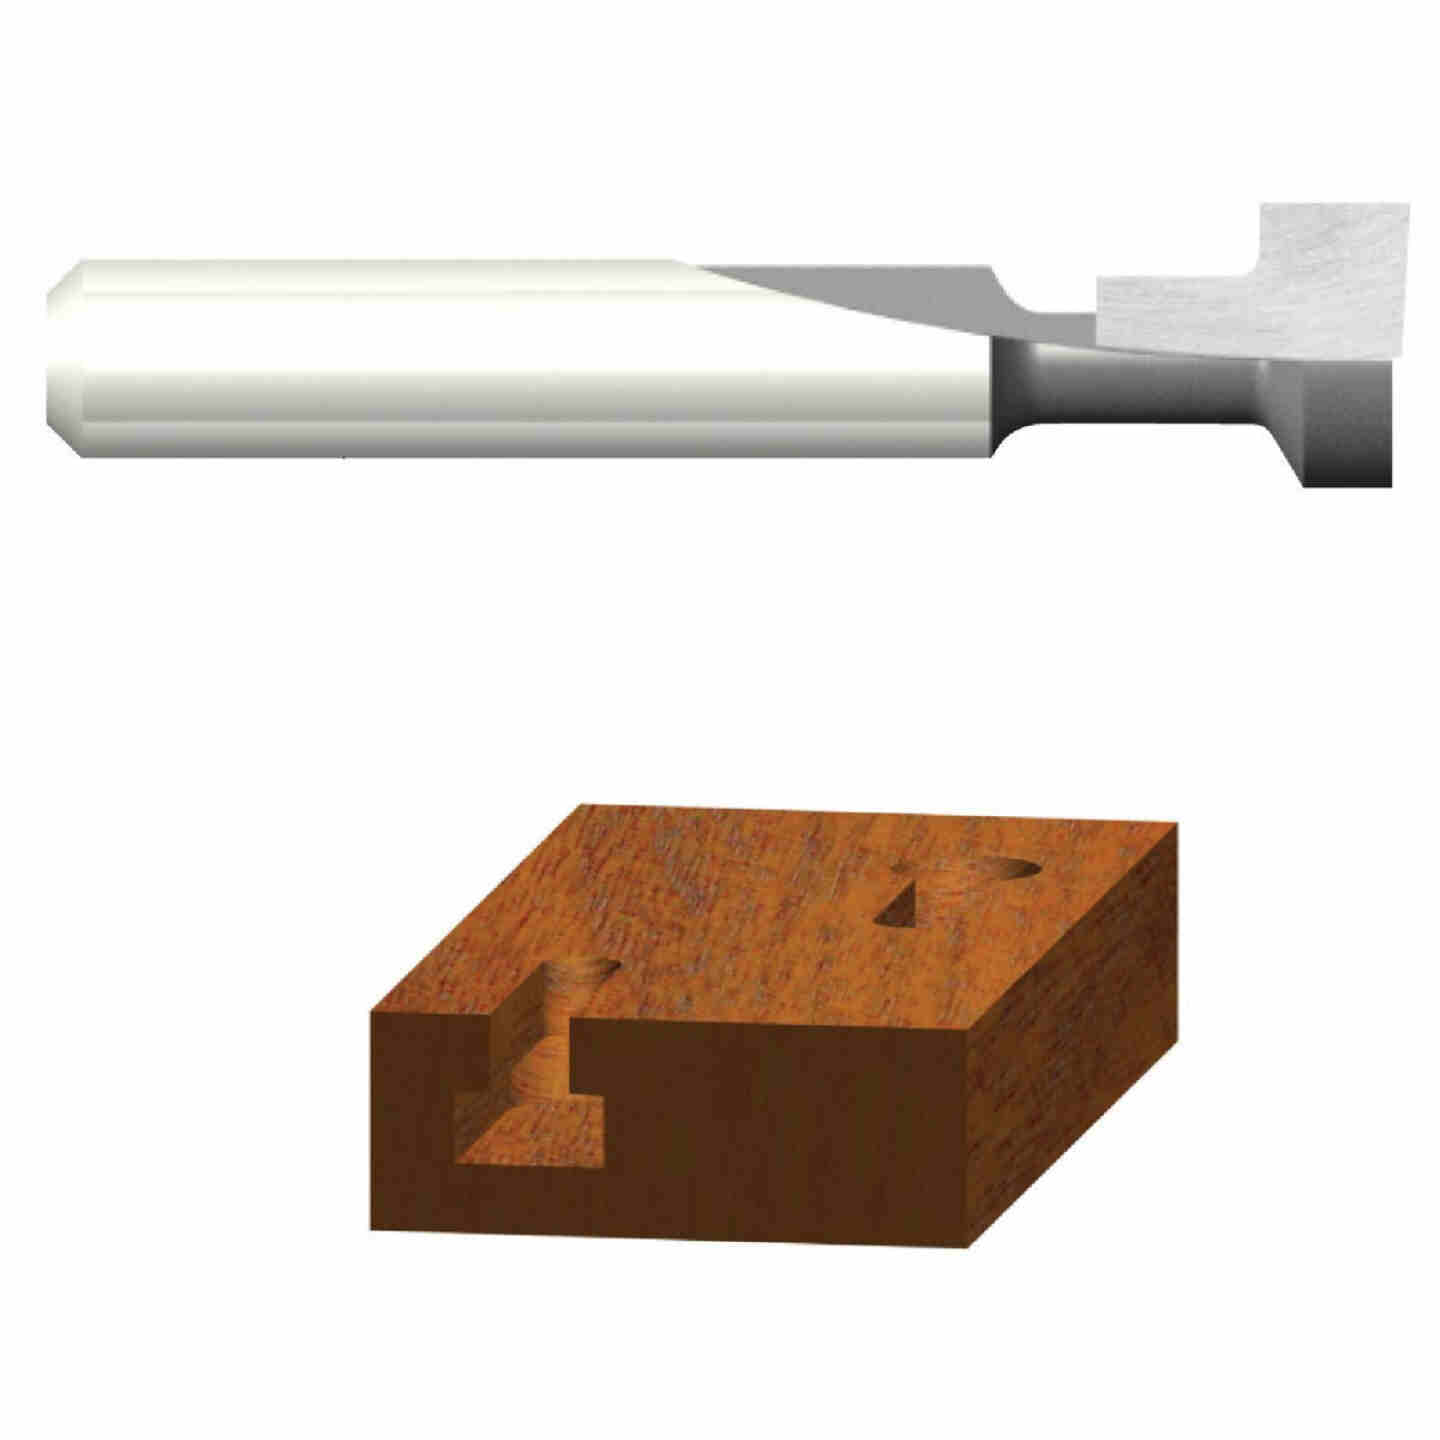 Vermont American Carbide 1/4 In. Key Hole Bit Image 1